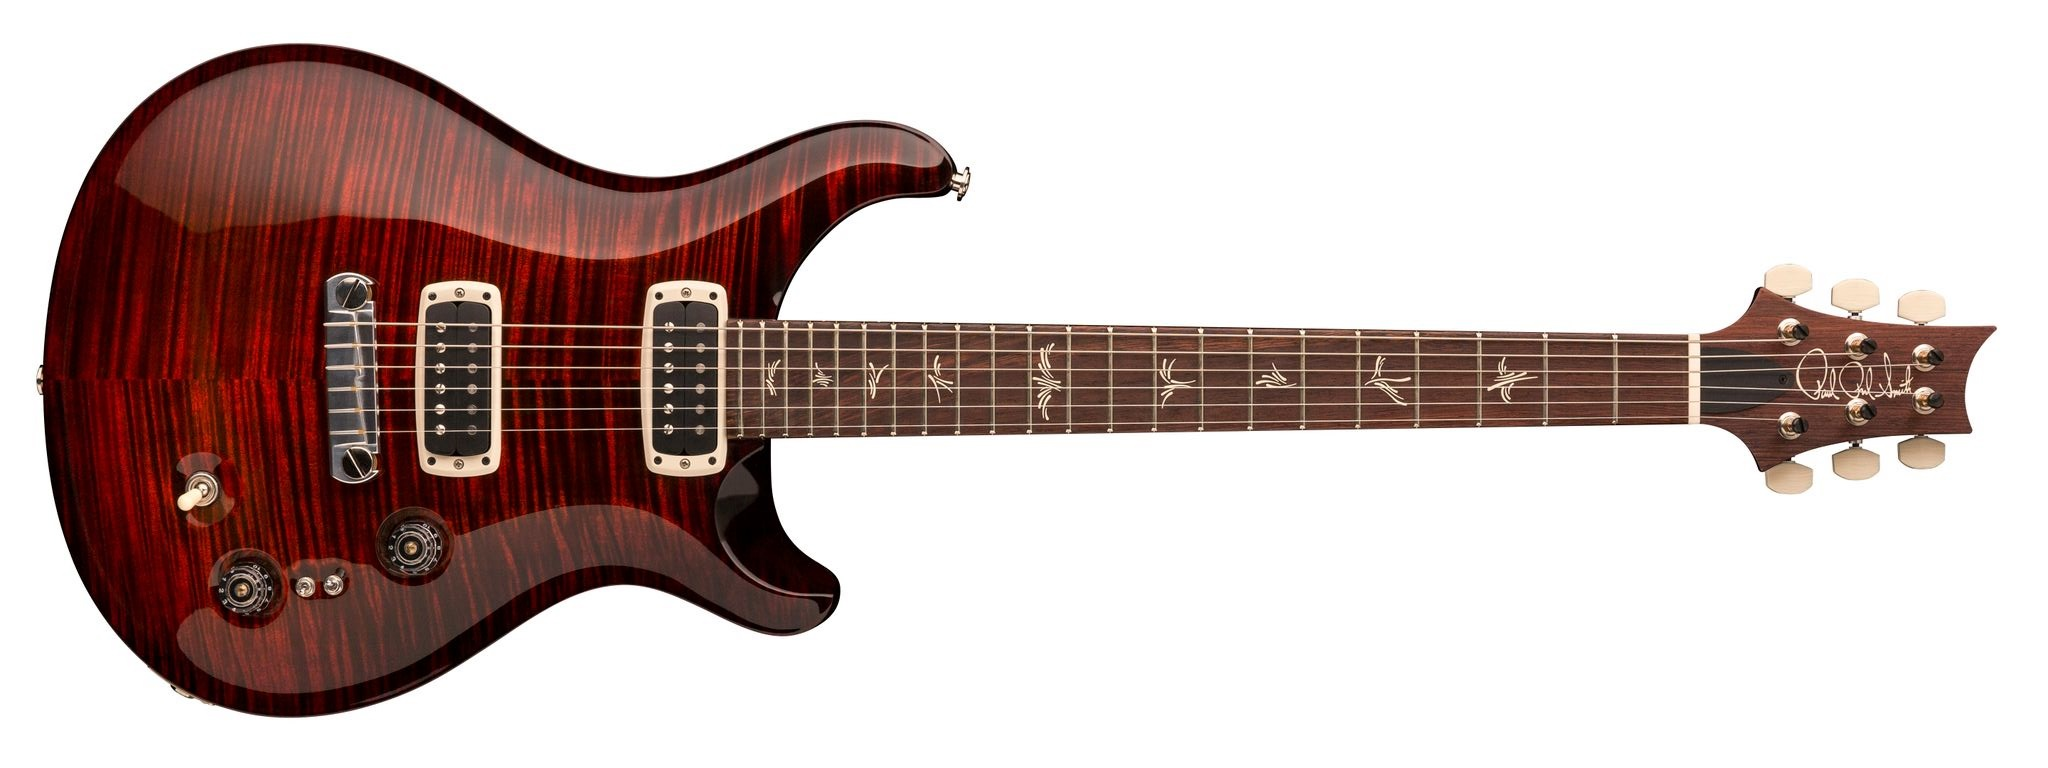 PRS Paul's Guitar Pattern Fire Red Burst